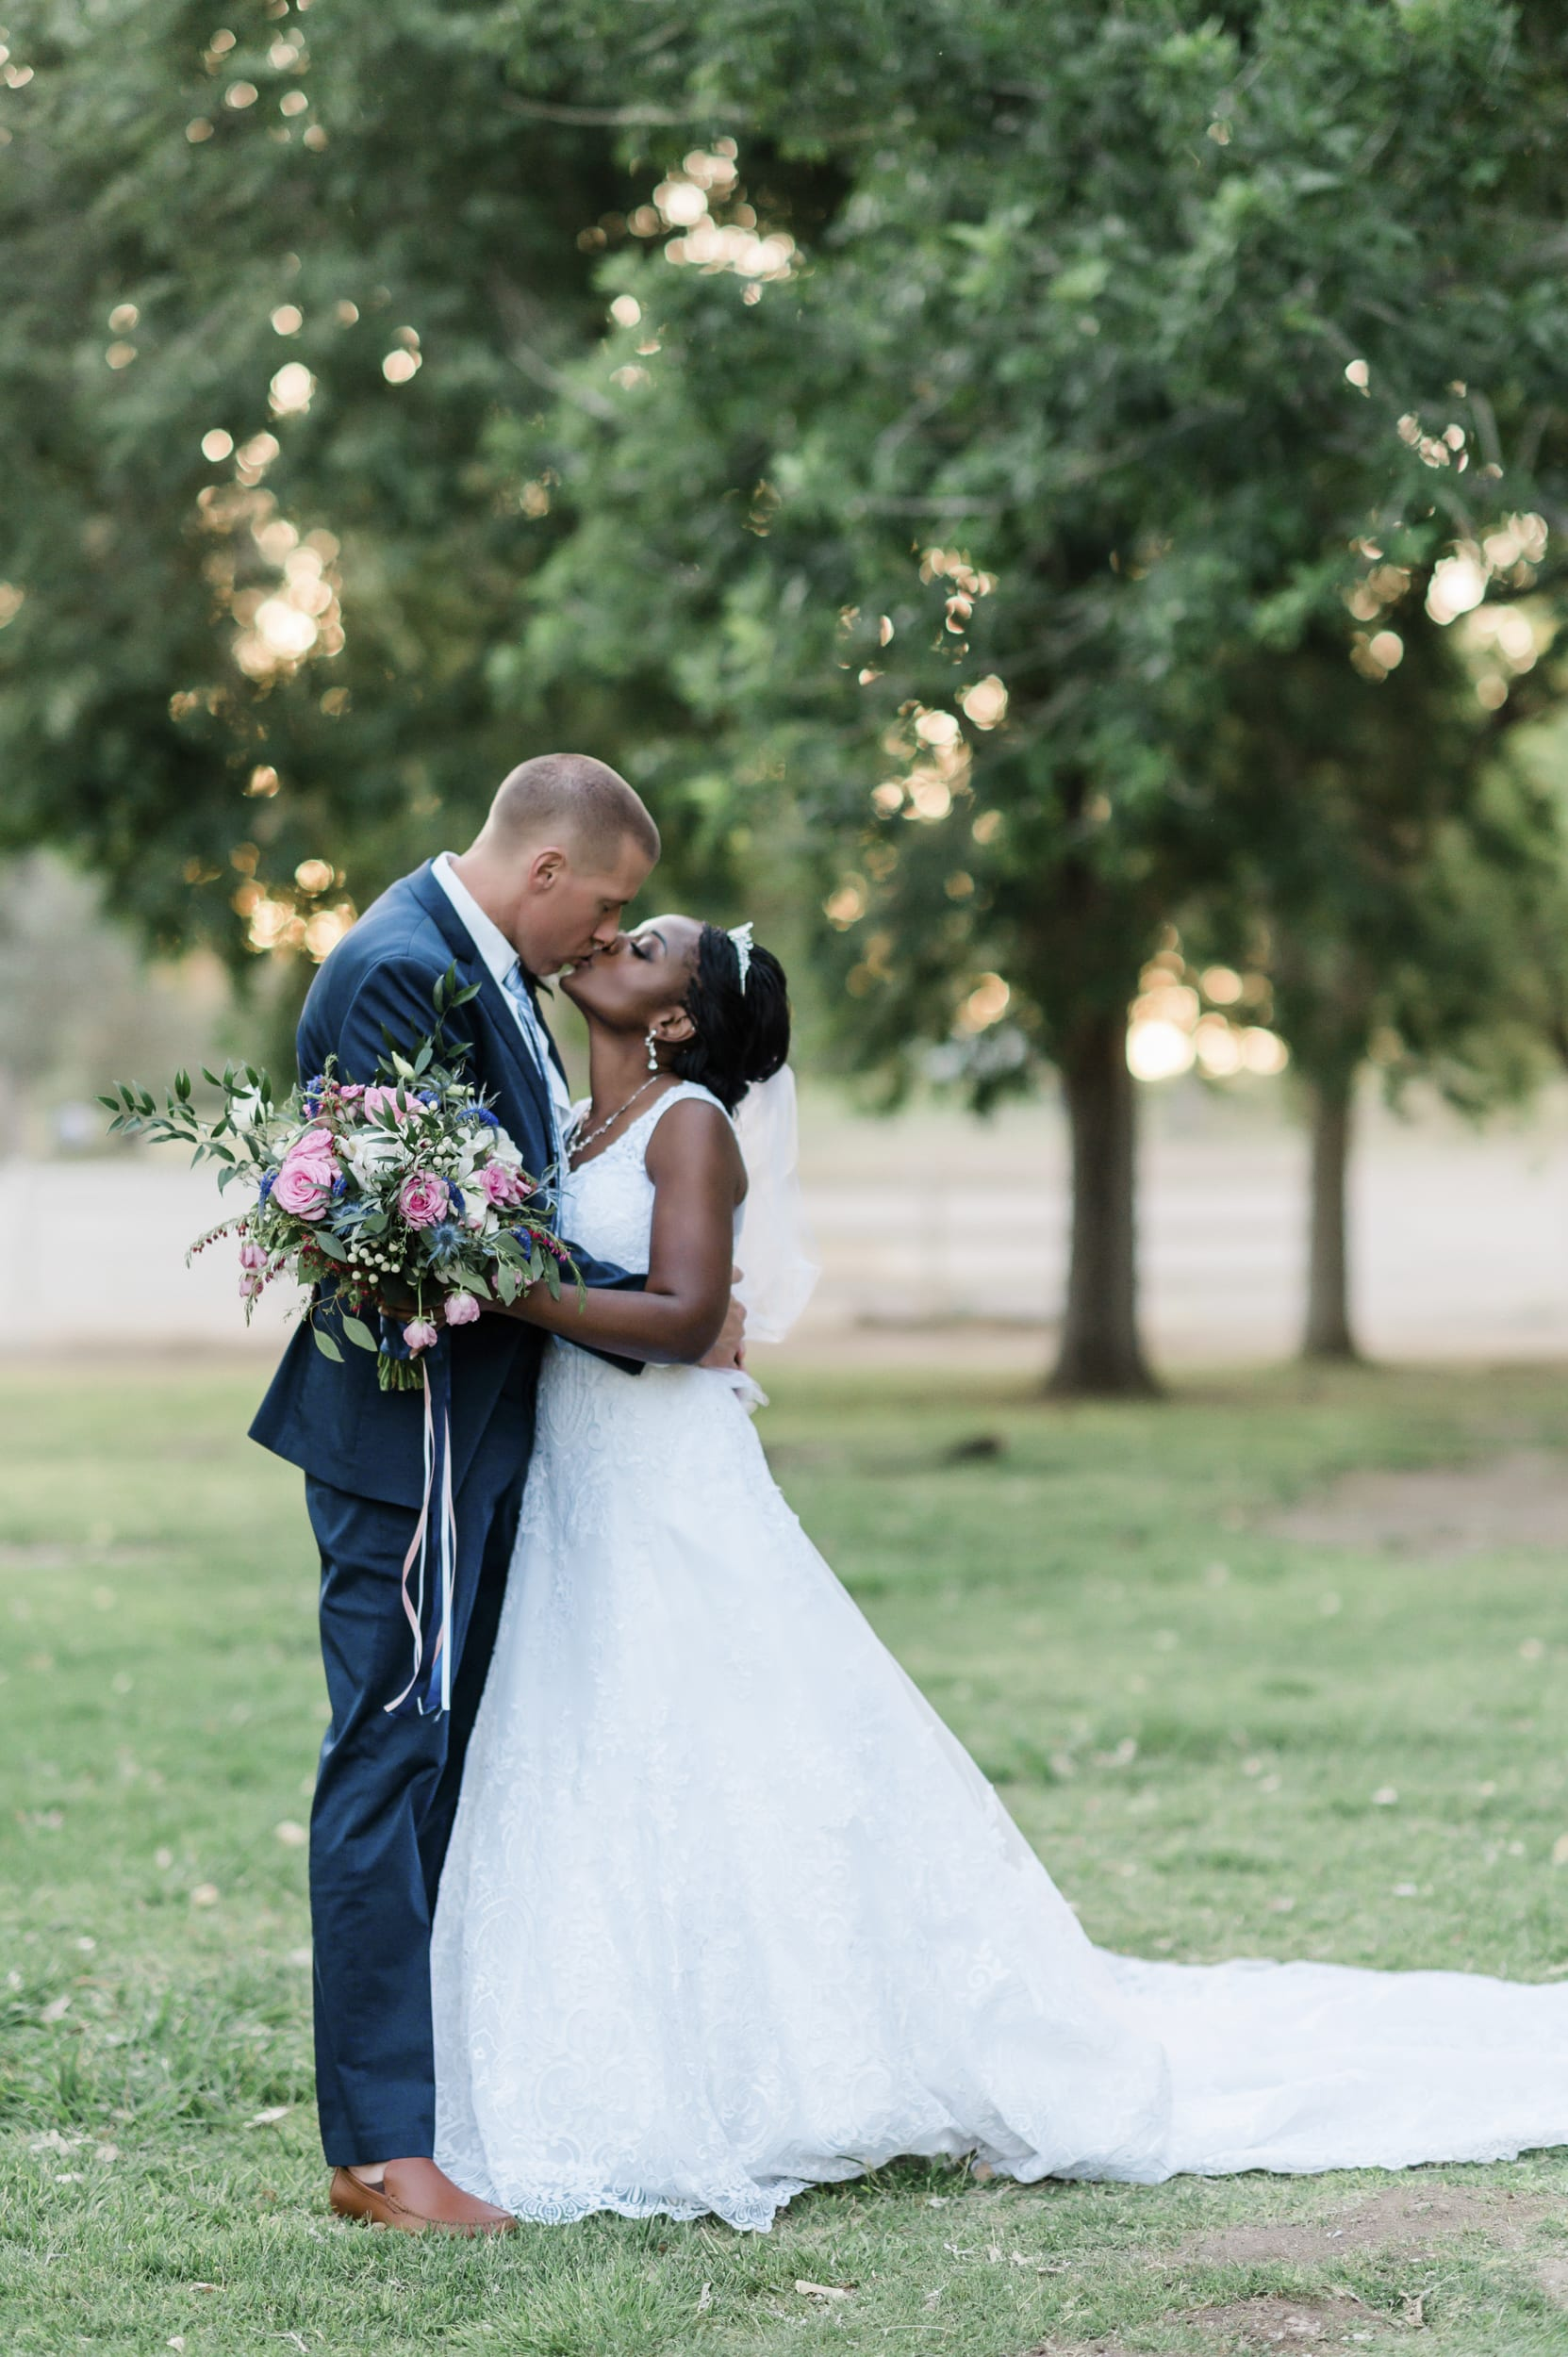 Latashia and Michael kissing for wedding photo.